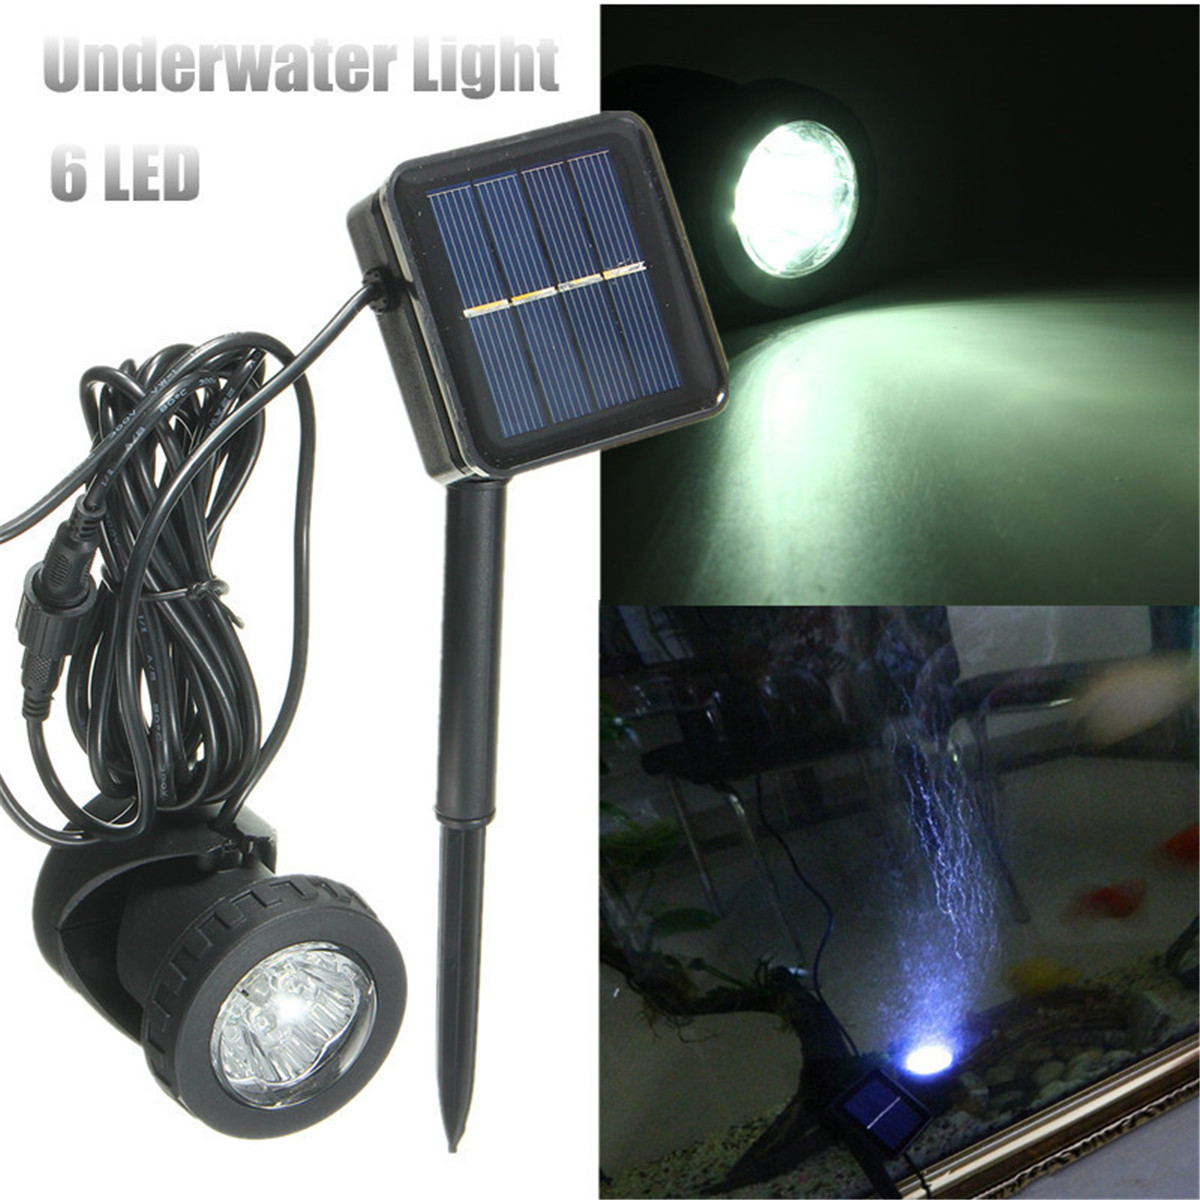 solar power u boot underwater lampe led light garten brunnen teich spotlight ebay. Black Bedroom Furniture Sets. Home Design Ideas